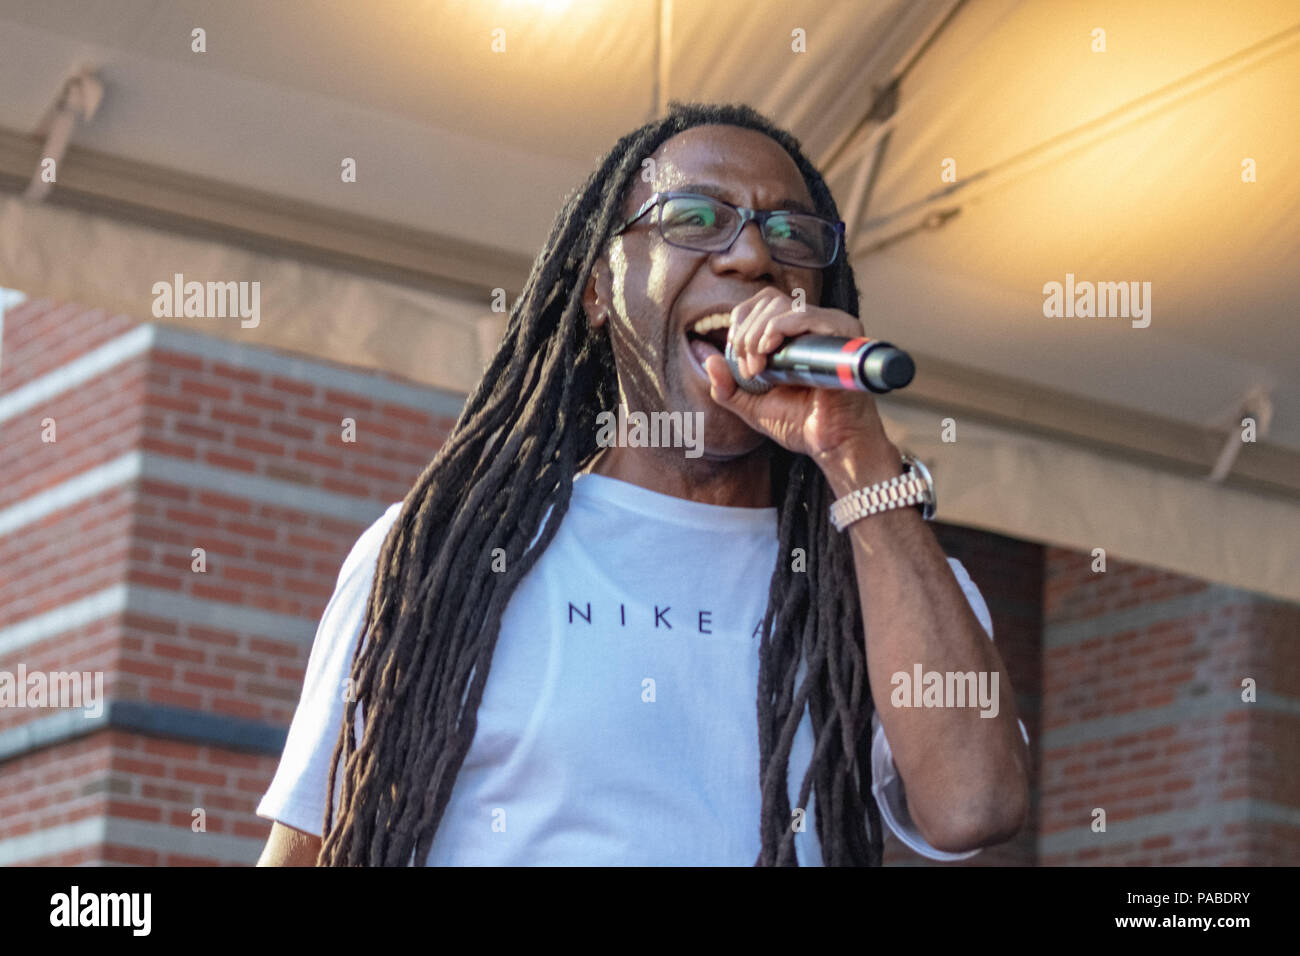 BUSY BEE HOSTING EPMD CONCERT AT NJ PAC July 19,2018 Stock Photo